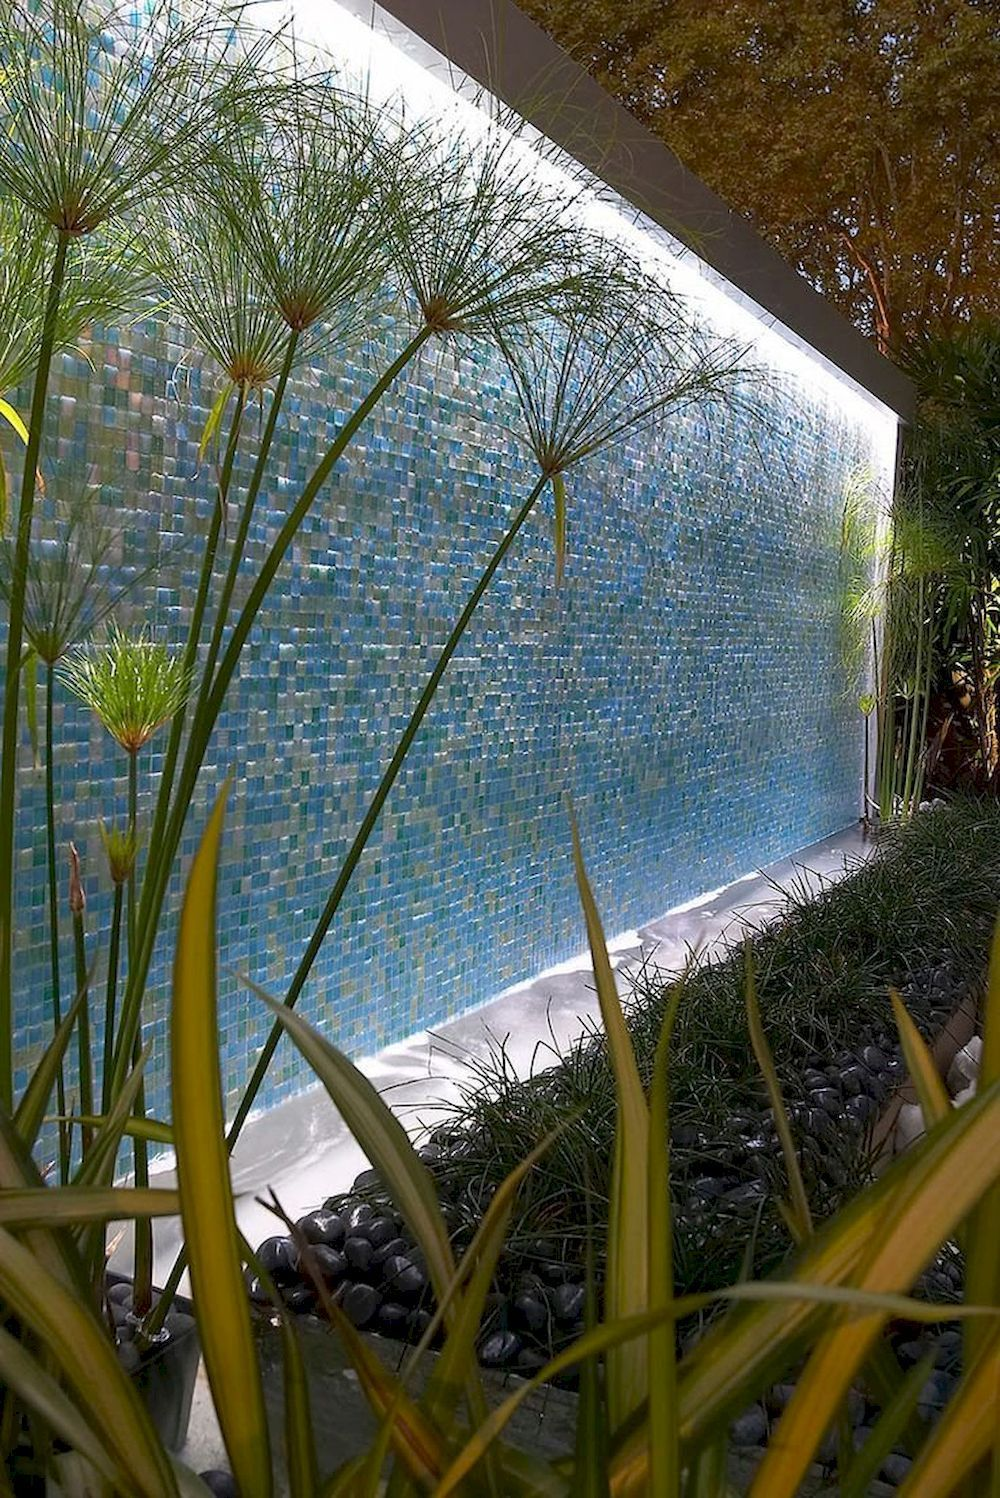 Beautify Your Garden With A Wall Waterfall Outdoor Fountain Kits In 2020 Indoor Water Features Water Wall Fountain Water Feature Wall